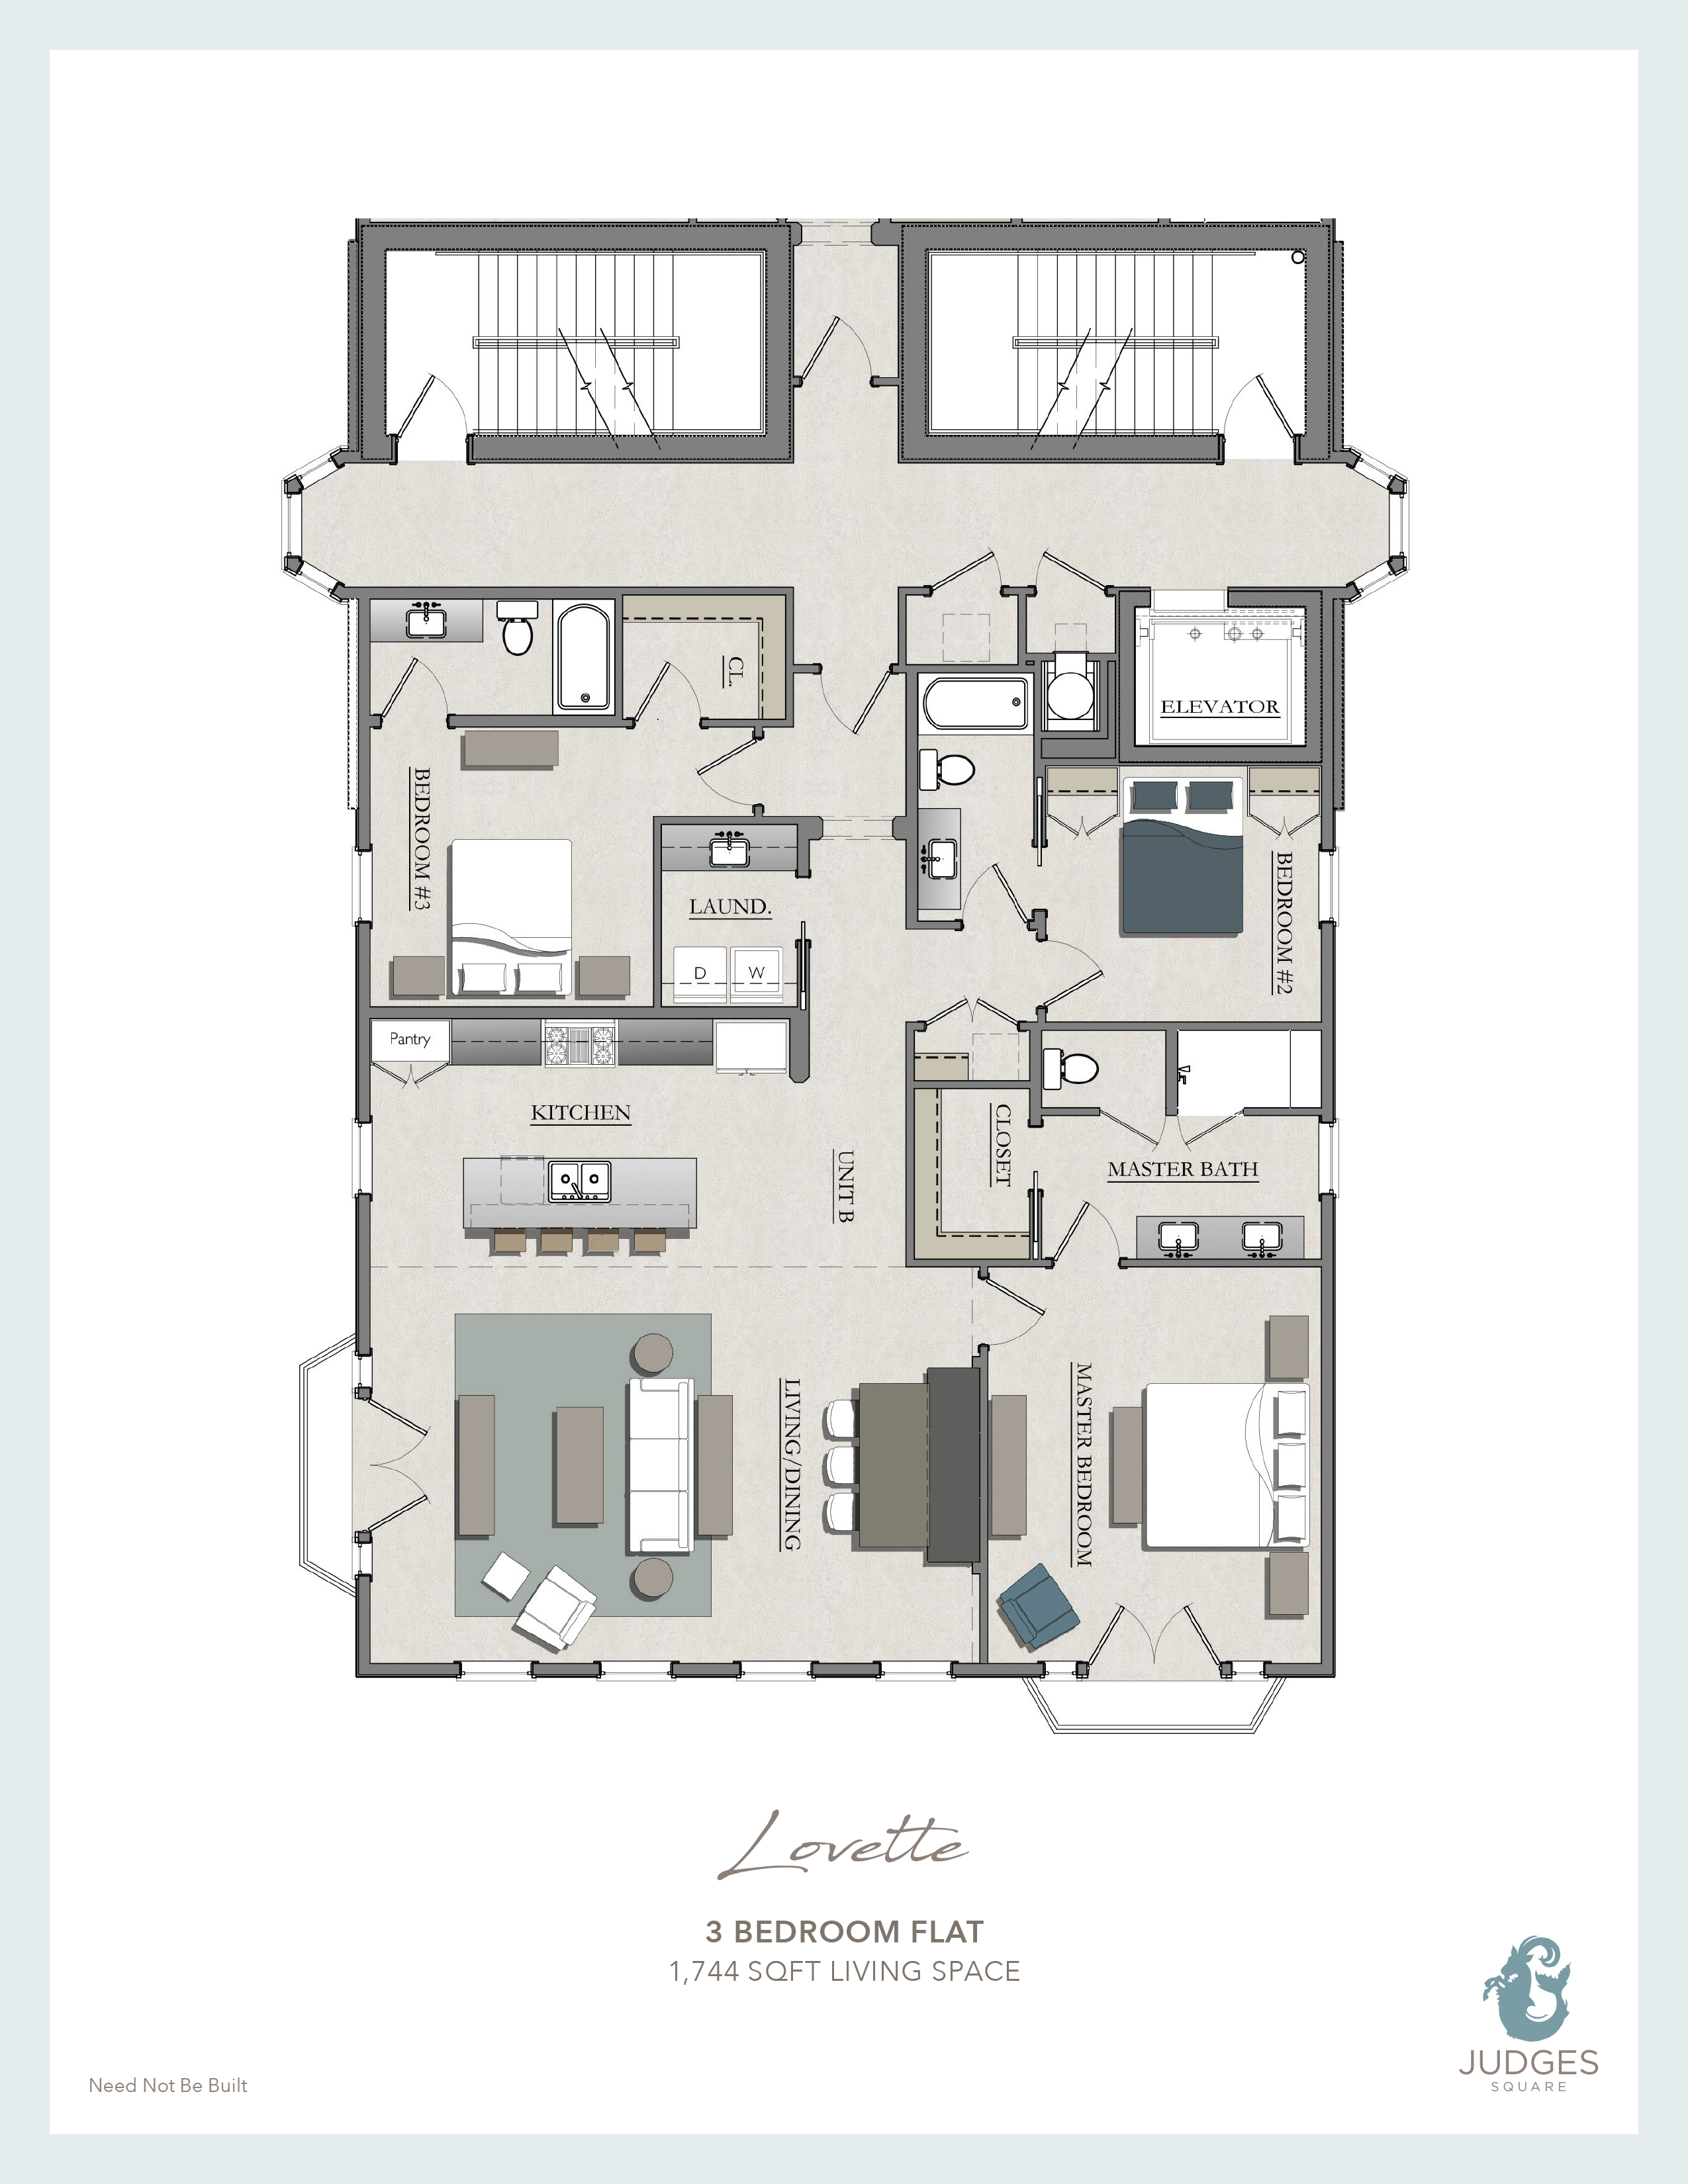 Lovette Plan Judge Square